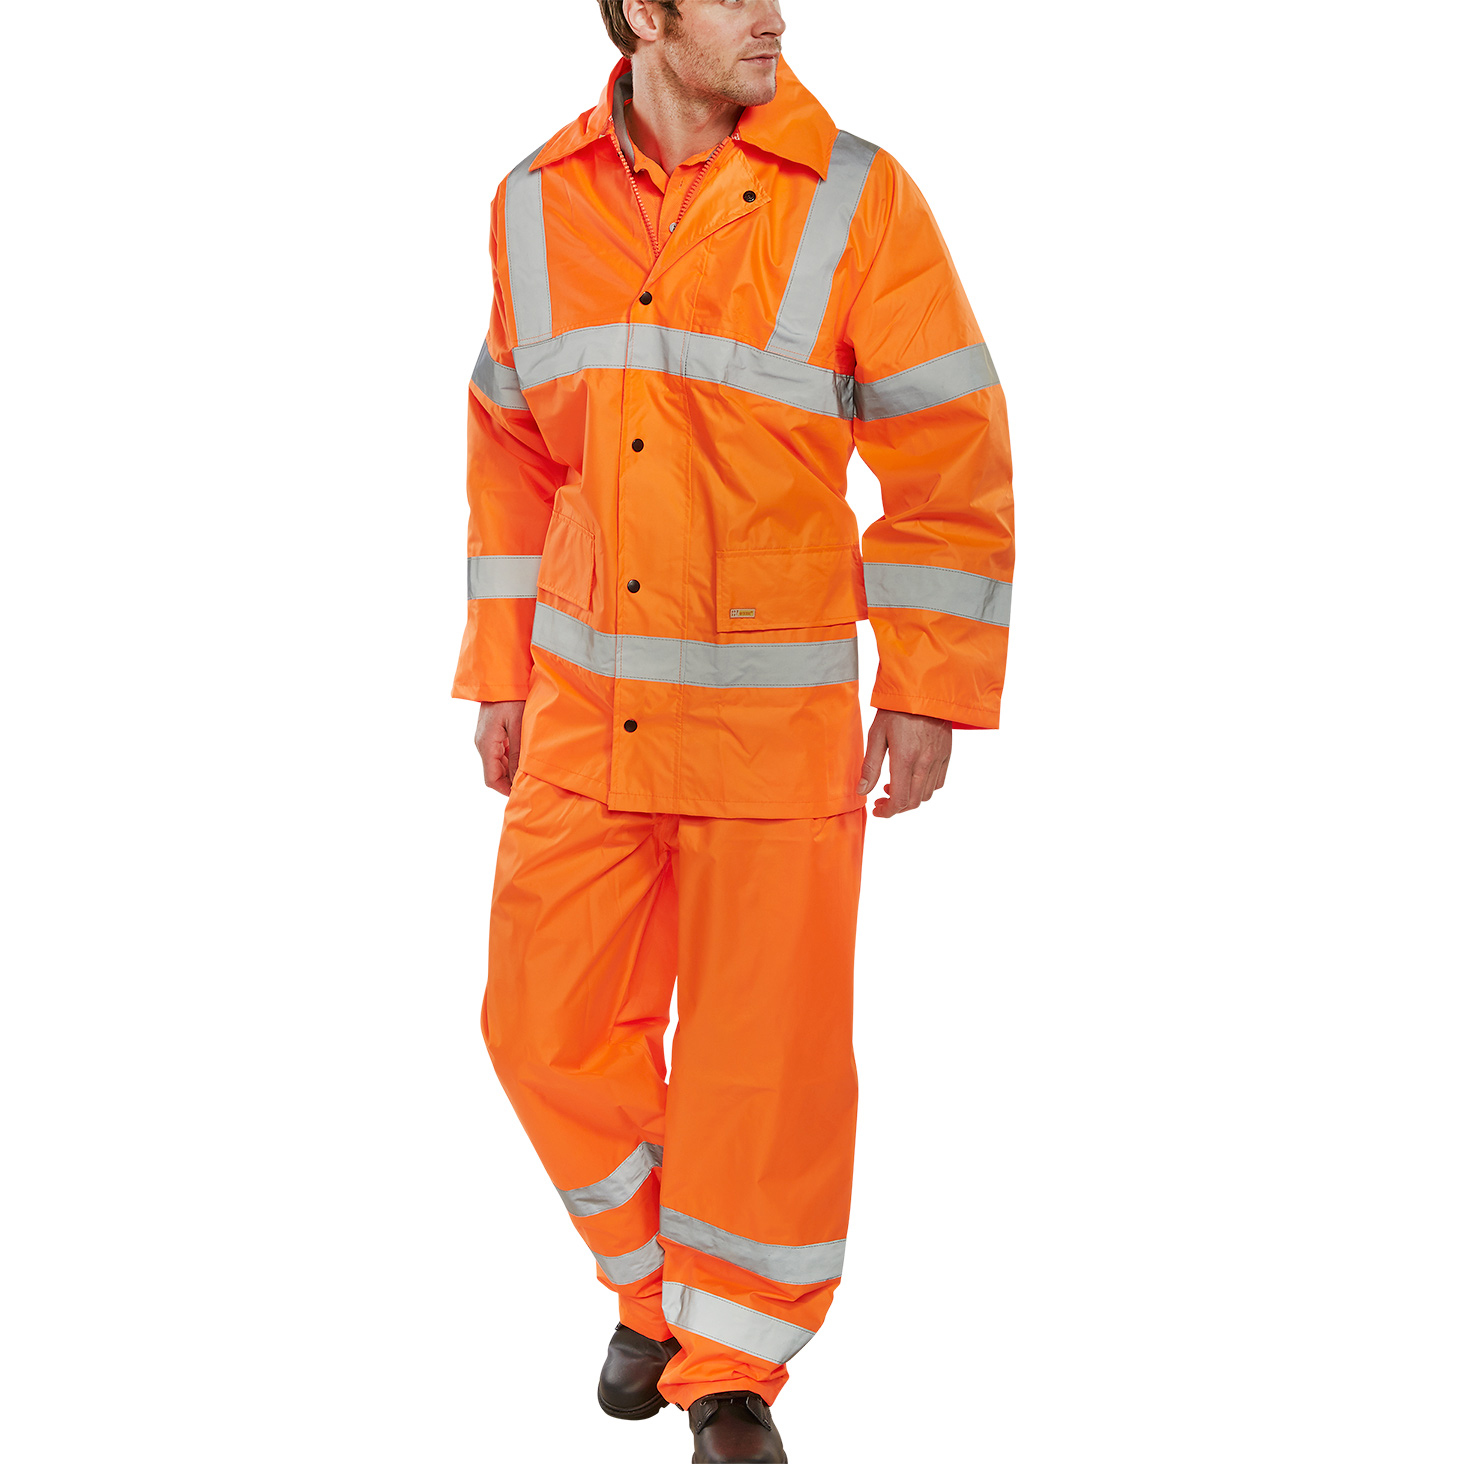 BSeen Hi-Vis L/Wt Suit Jkt/Trs EN ISO 20471 EN 343 Large Orange Ref TS8ORL *Up to 3 Day Leadtime*